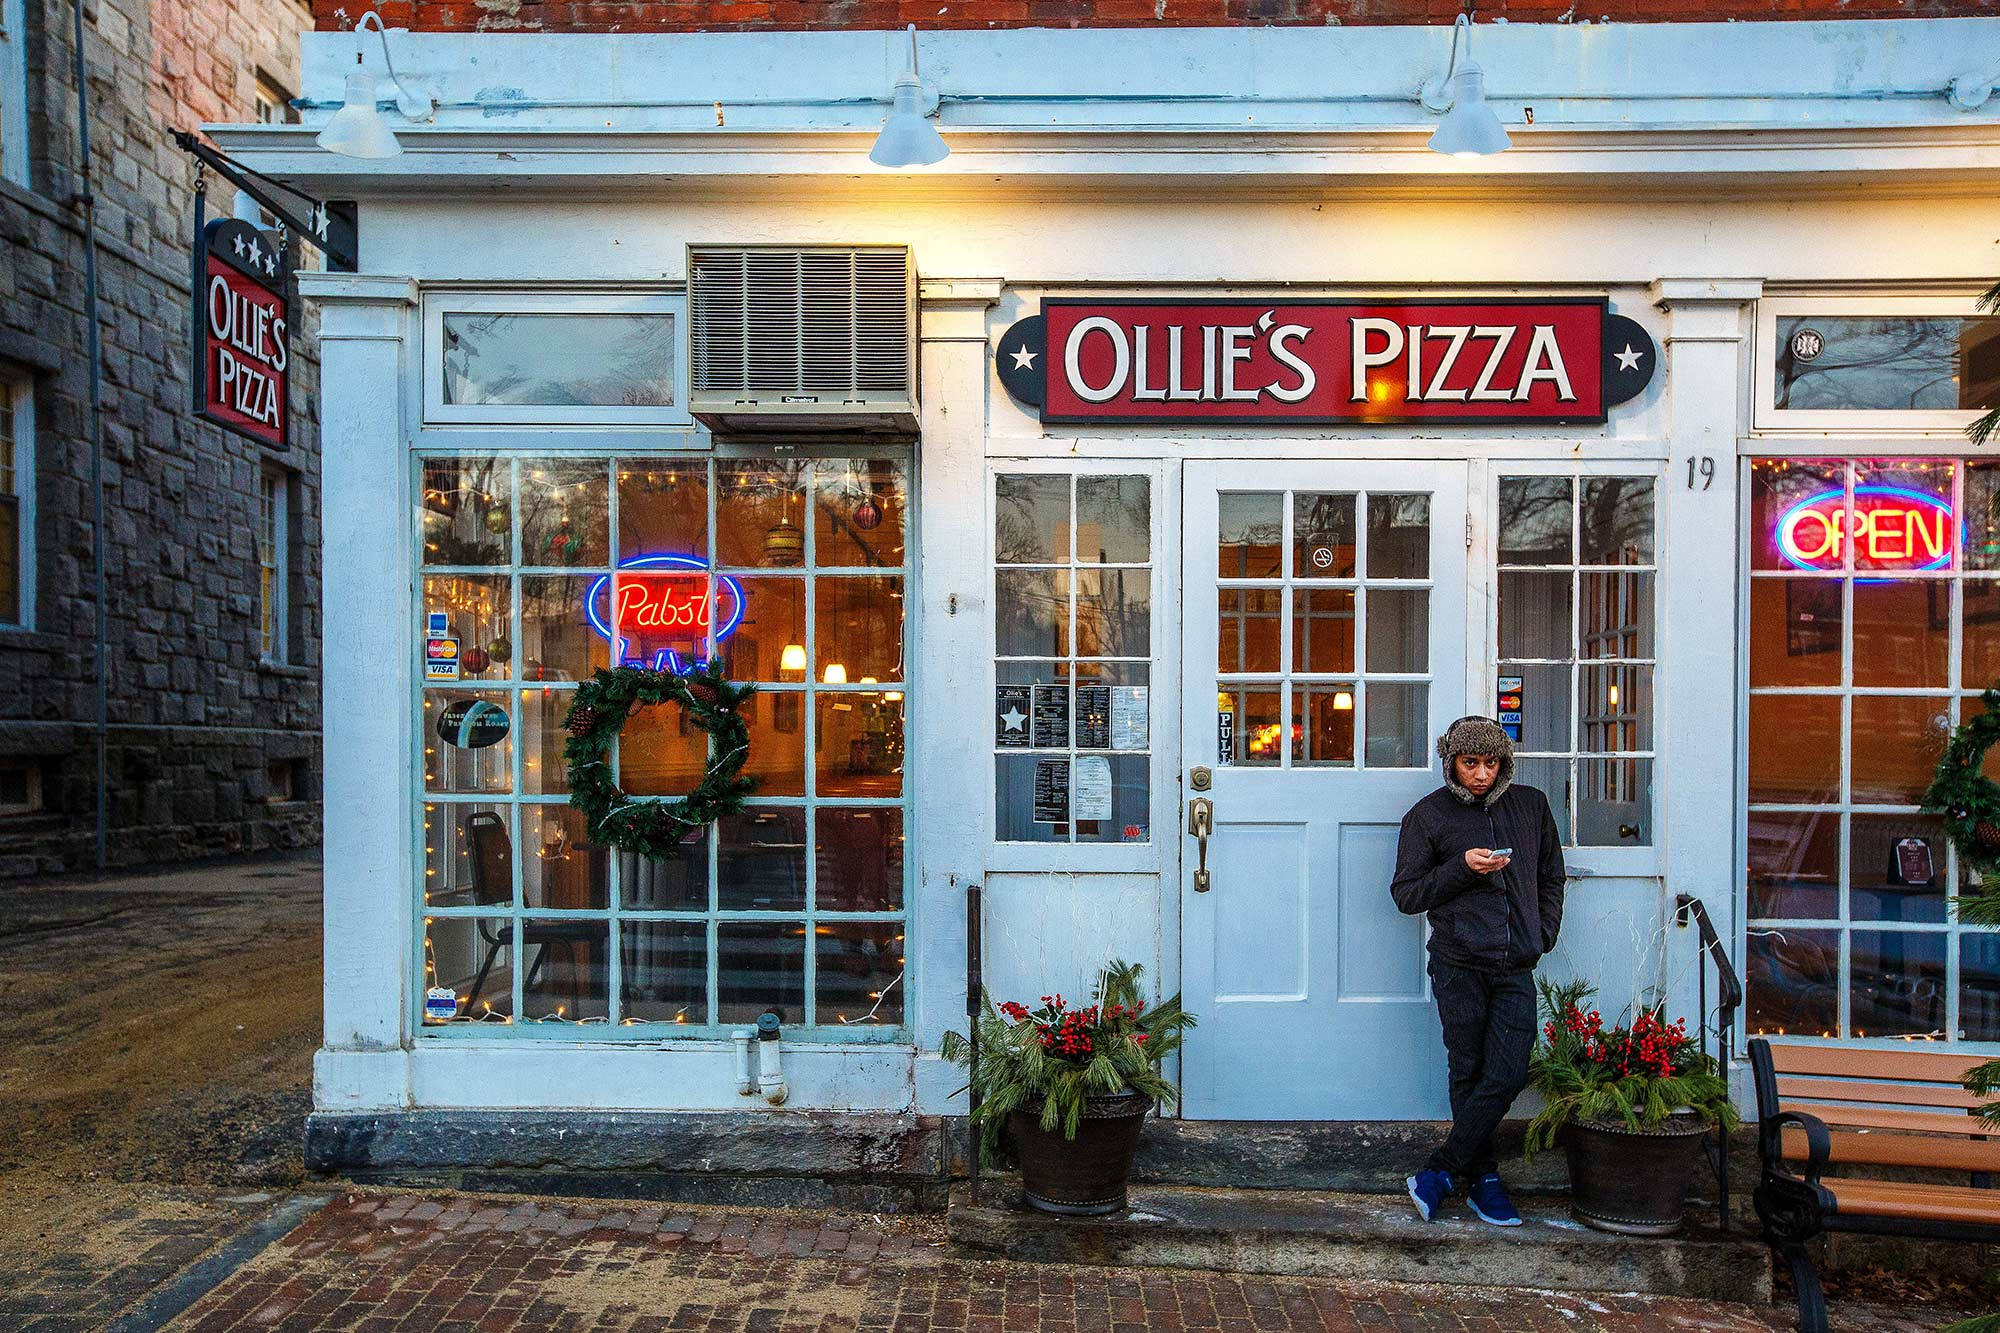 Ollie's Pizza, Litchfield, CT, 12/15/14